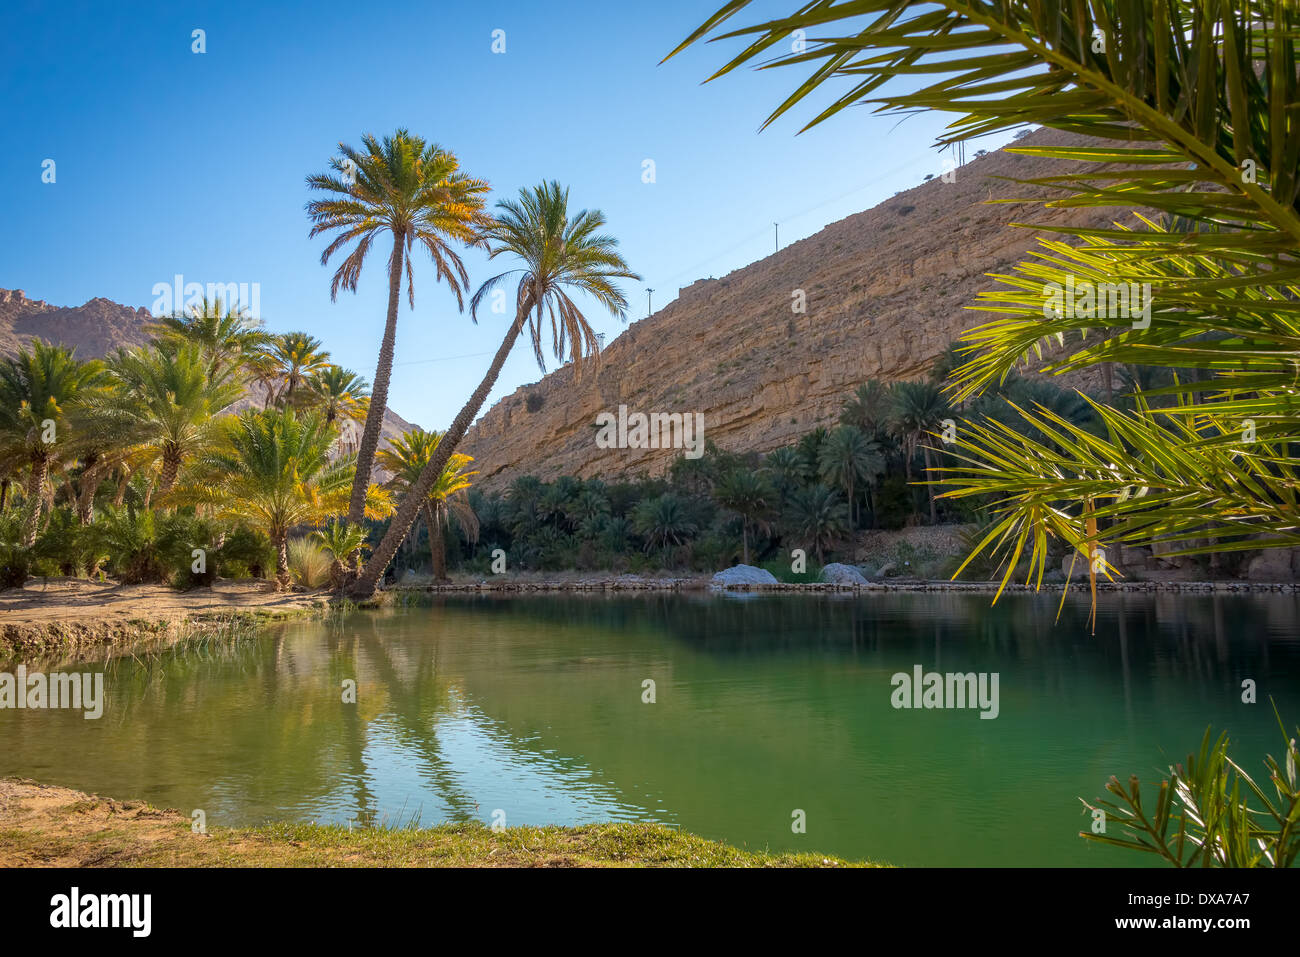 Natural pool in Wadi Bani Khalid, Sultanate Oman, one of the most popular touristic places in country. - Stock Image